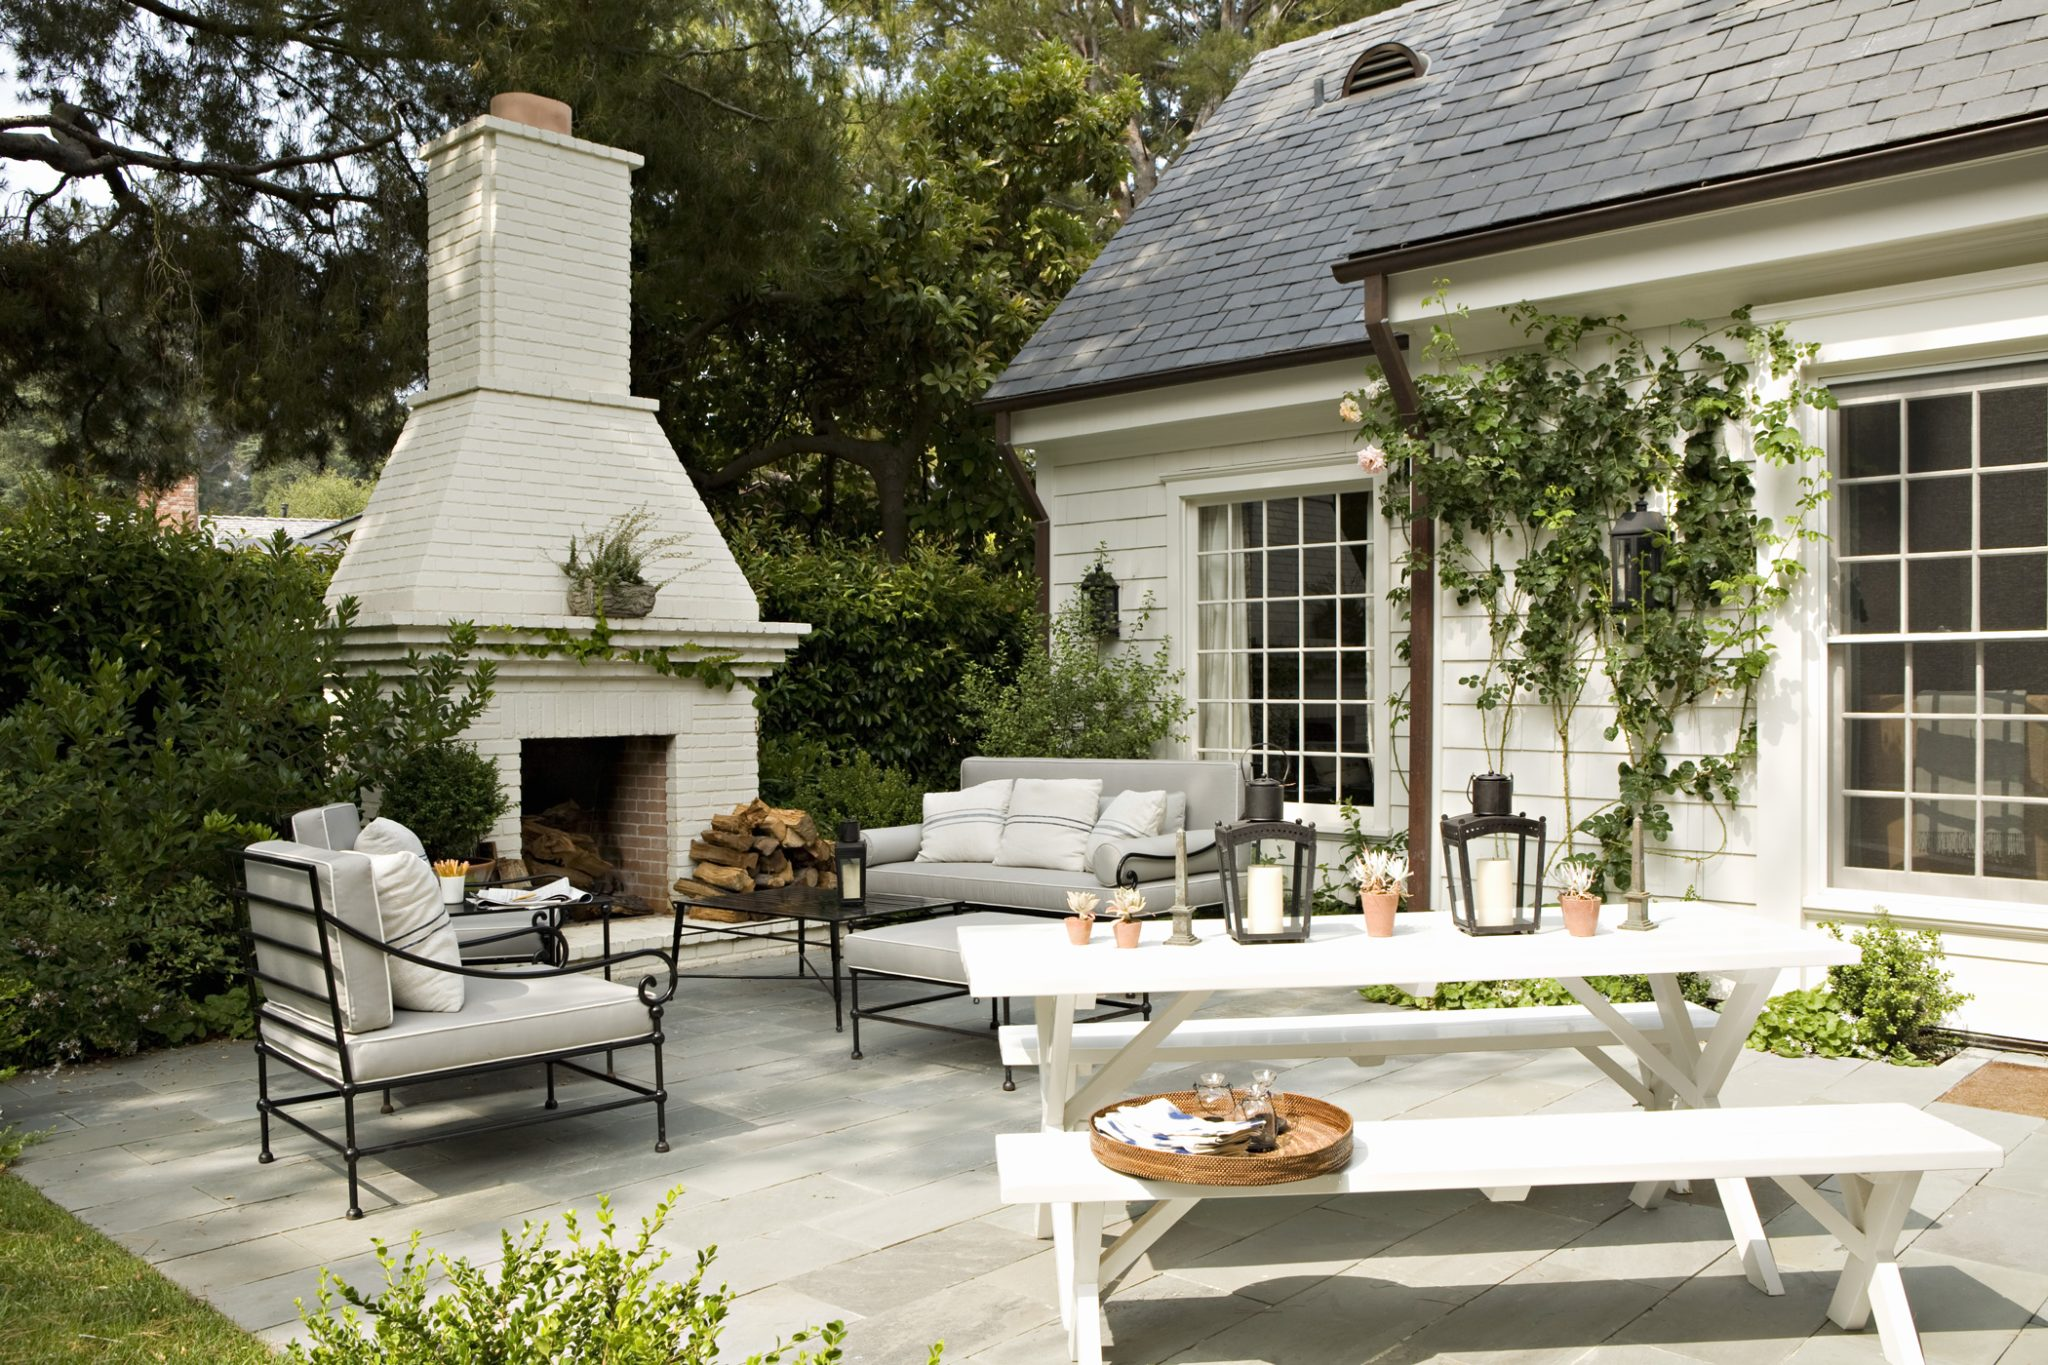 Outdoor Fireplace and Patio at a Custom Colonial Home by Tim Barber Ltd.